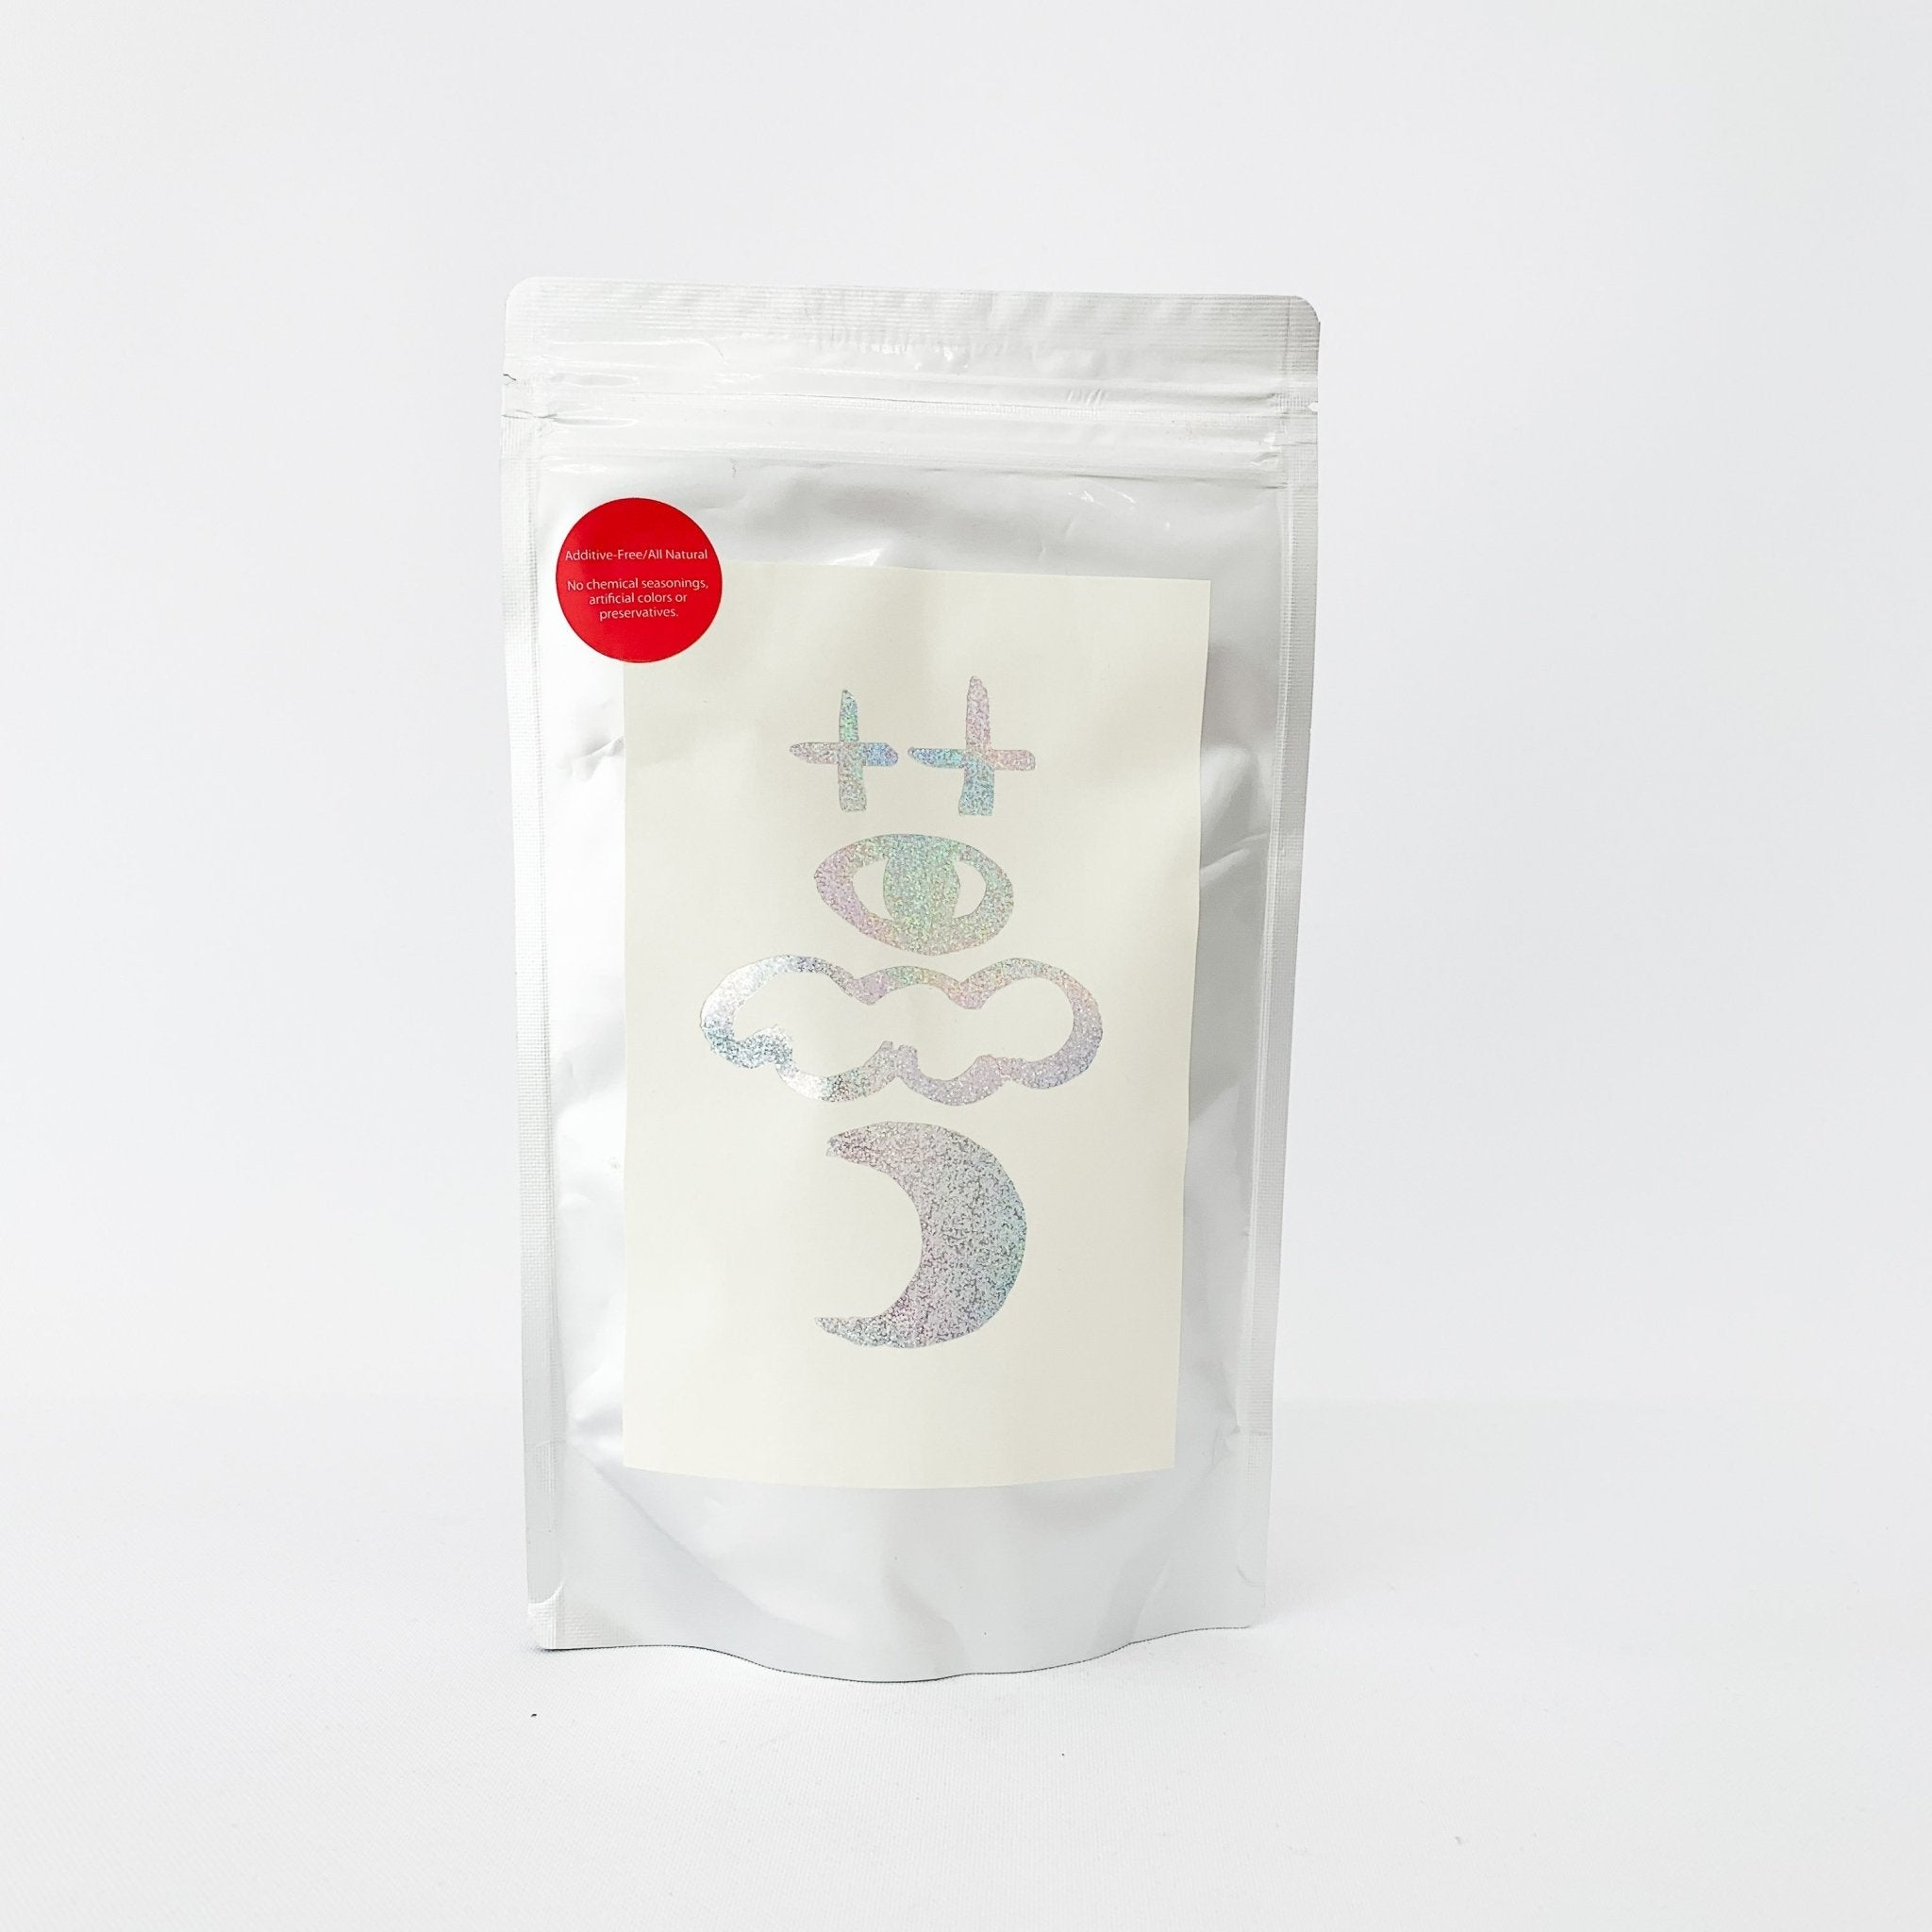 Dashi Dream by Studio Cue - tortoise general store